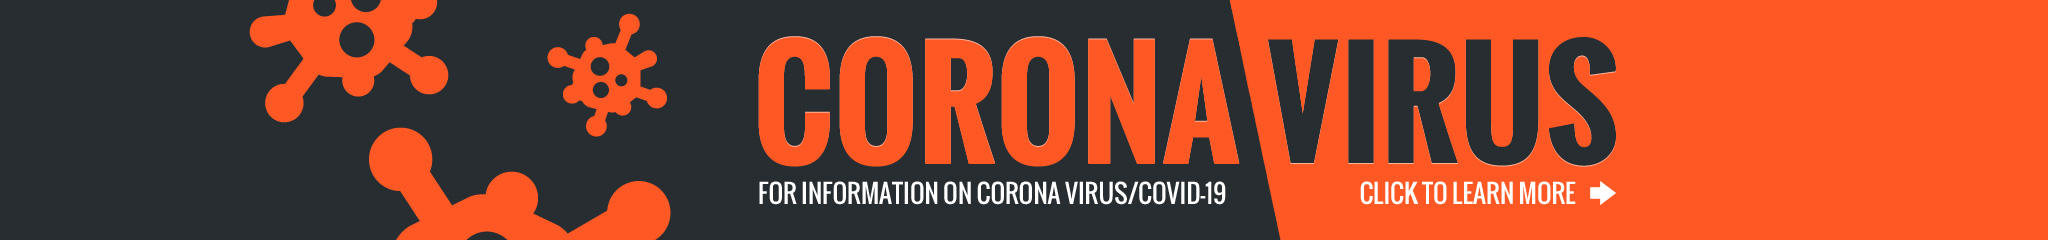 Corona Virus/Covid-19 information graphic. Click to learn more.